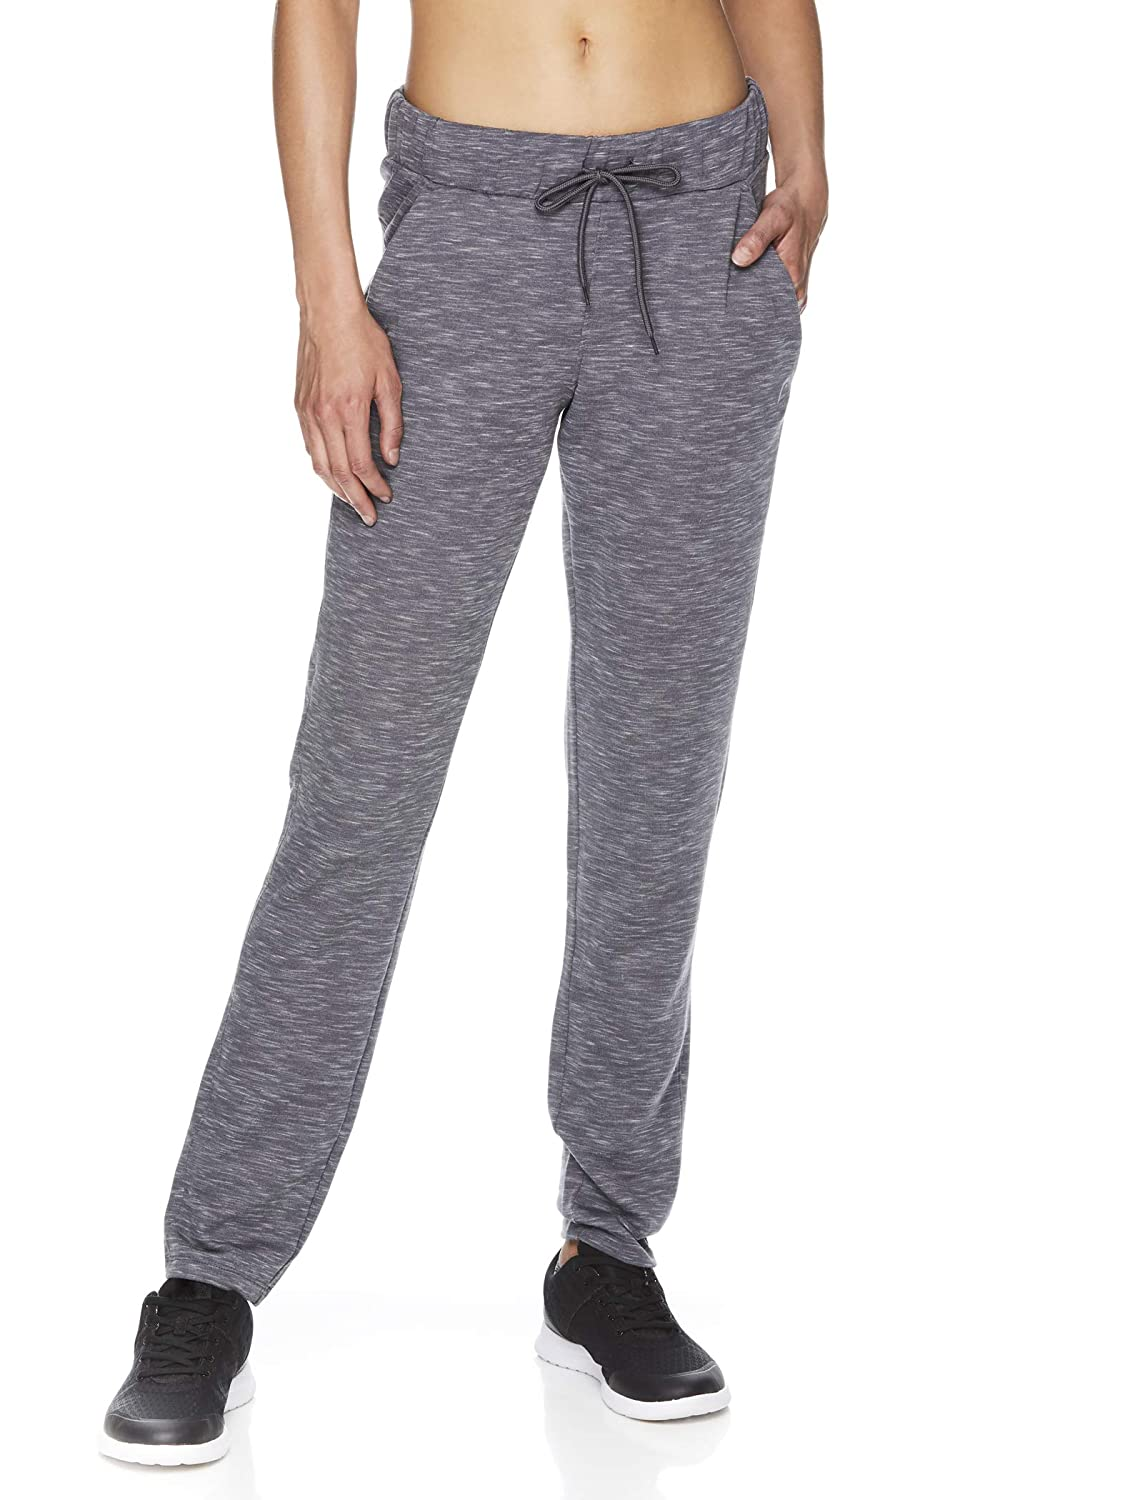 Workout /& Athleisure Sweatpants for Women HEAD Womens Athletic Jogger Running Pants